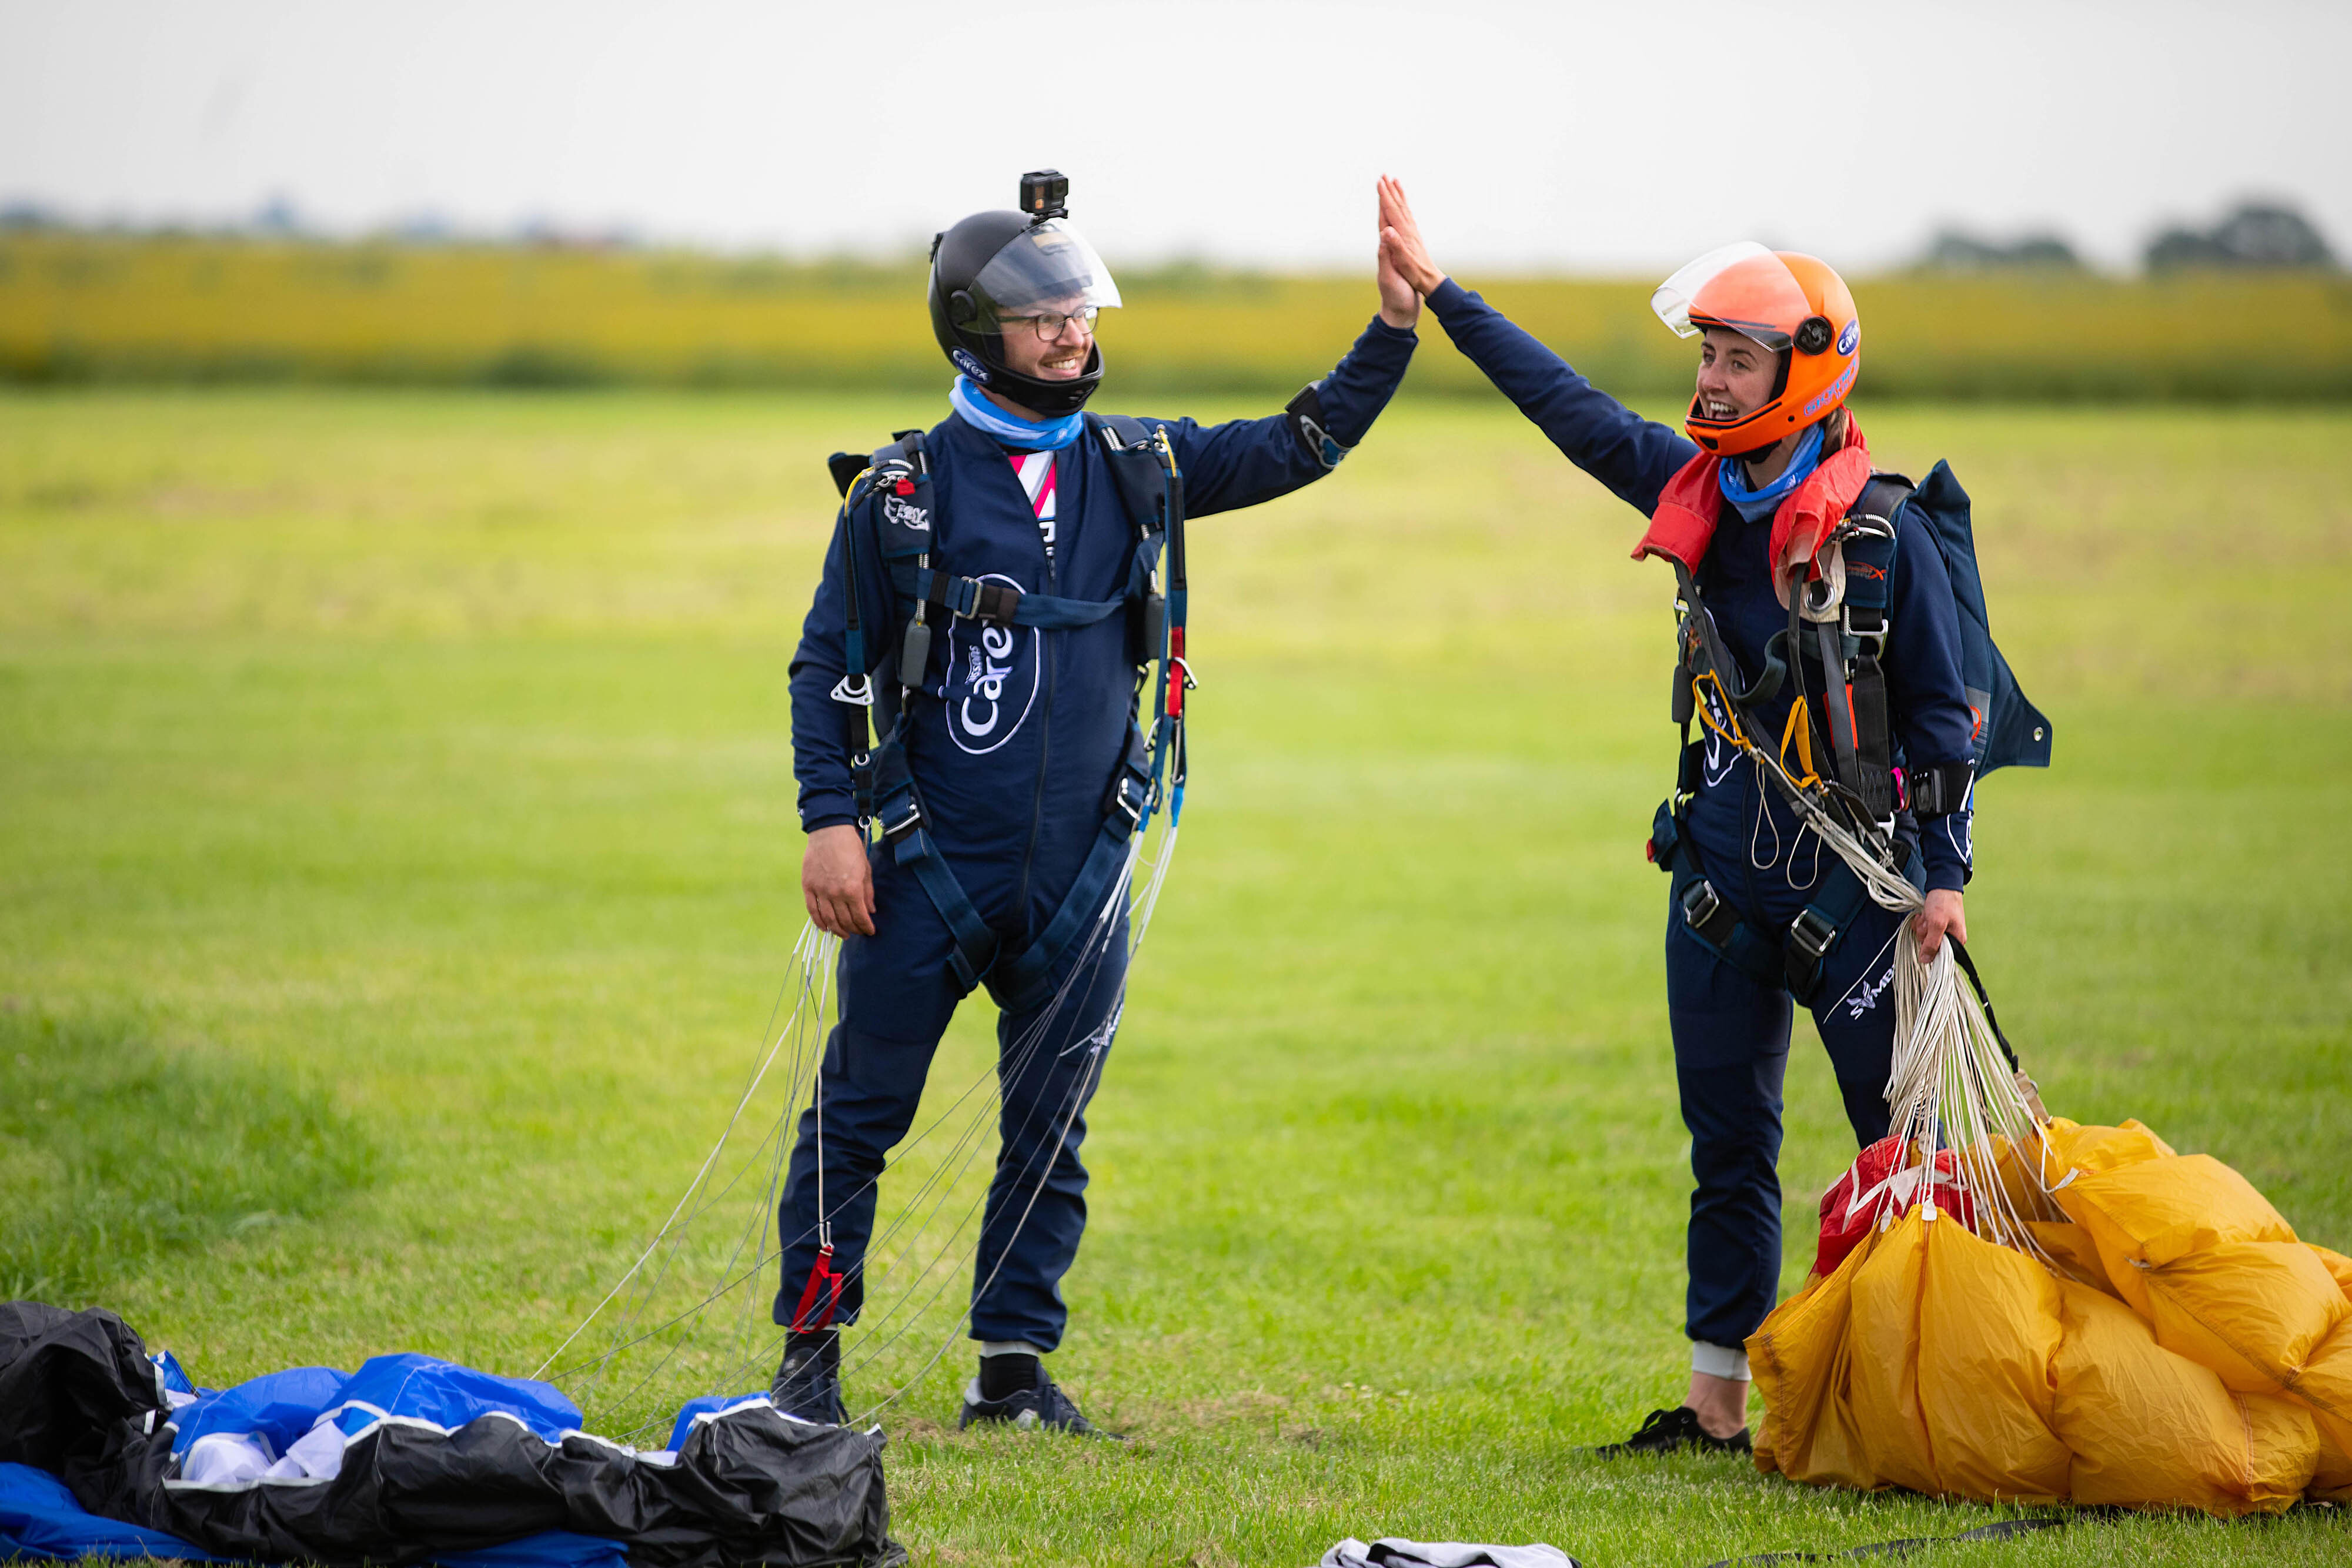 <p>EDITORIAL USE ONLY Professional skydivers, Emily Aucutt (right) and Josh Carratt officially set the Guinness World Record title for 'Most high and low fives by a pair in a single sky dive' at Langar Airfield in Nottingham, as Carex marks the final COVID-19 restrictions lifting today in England to show people how they can get out and about as safely as possible, by carrying sanitiser on the go. Issue date: Monday July 19, 2021.</p>